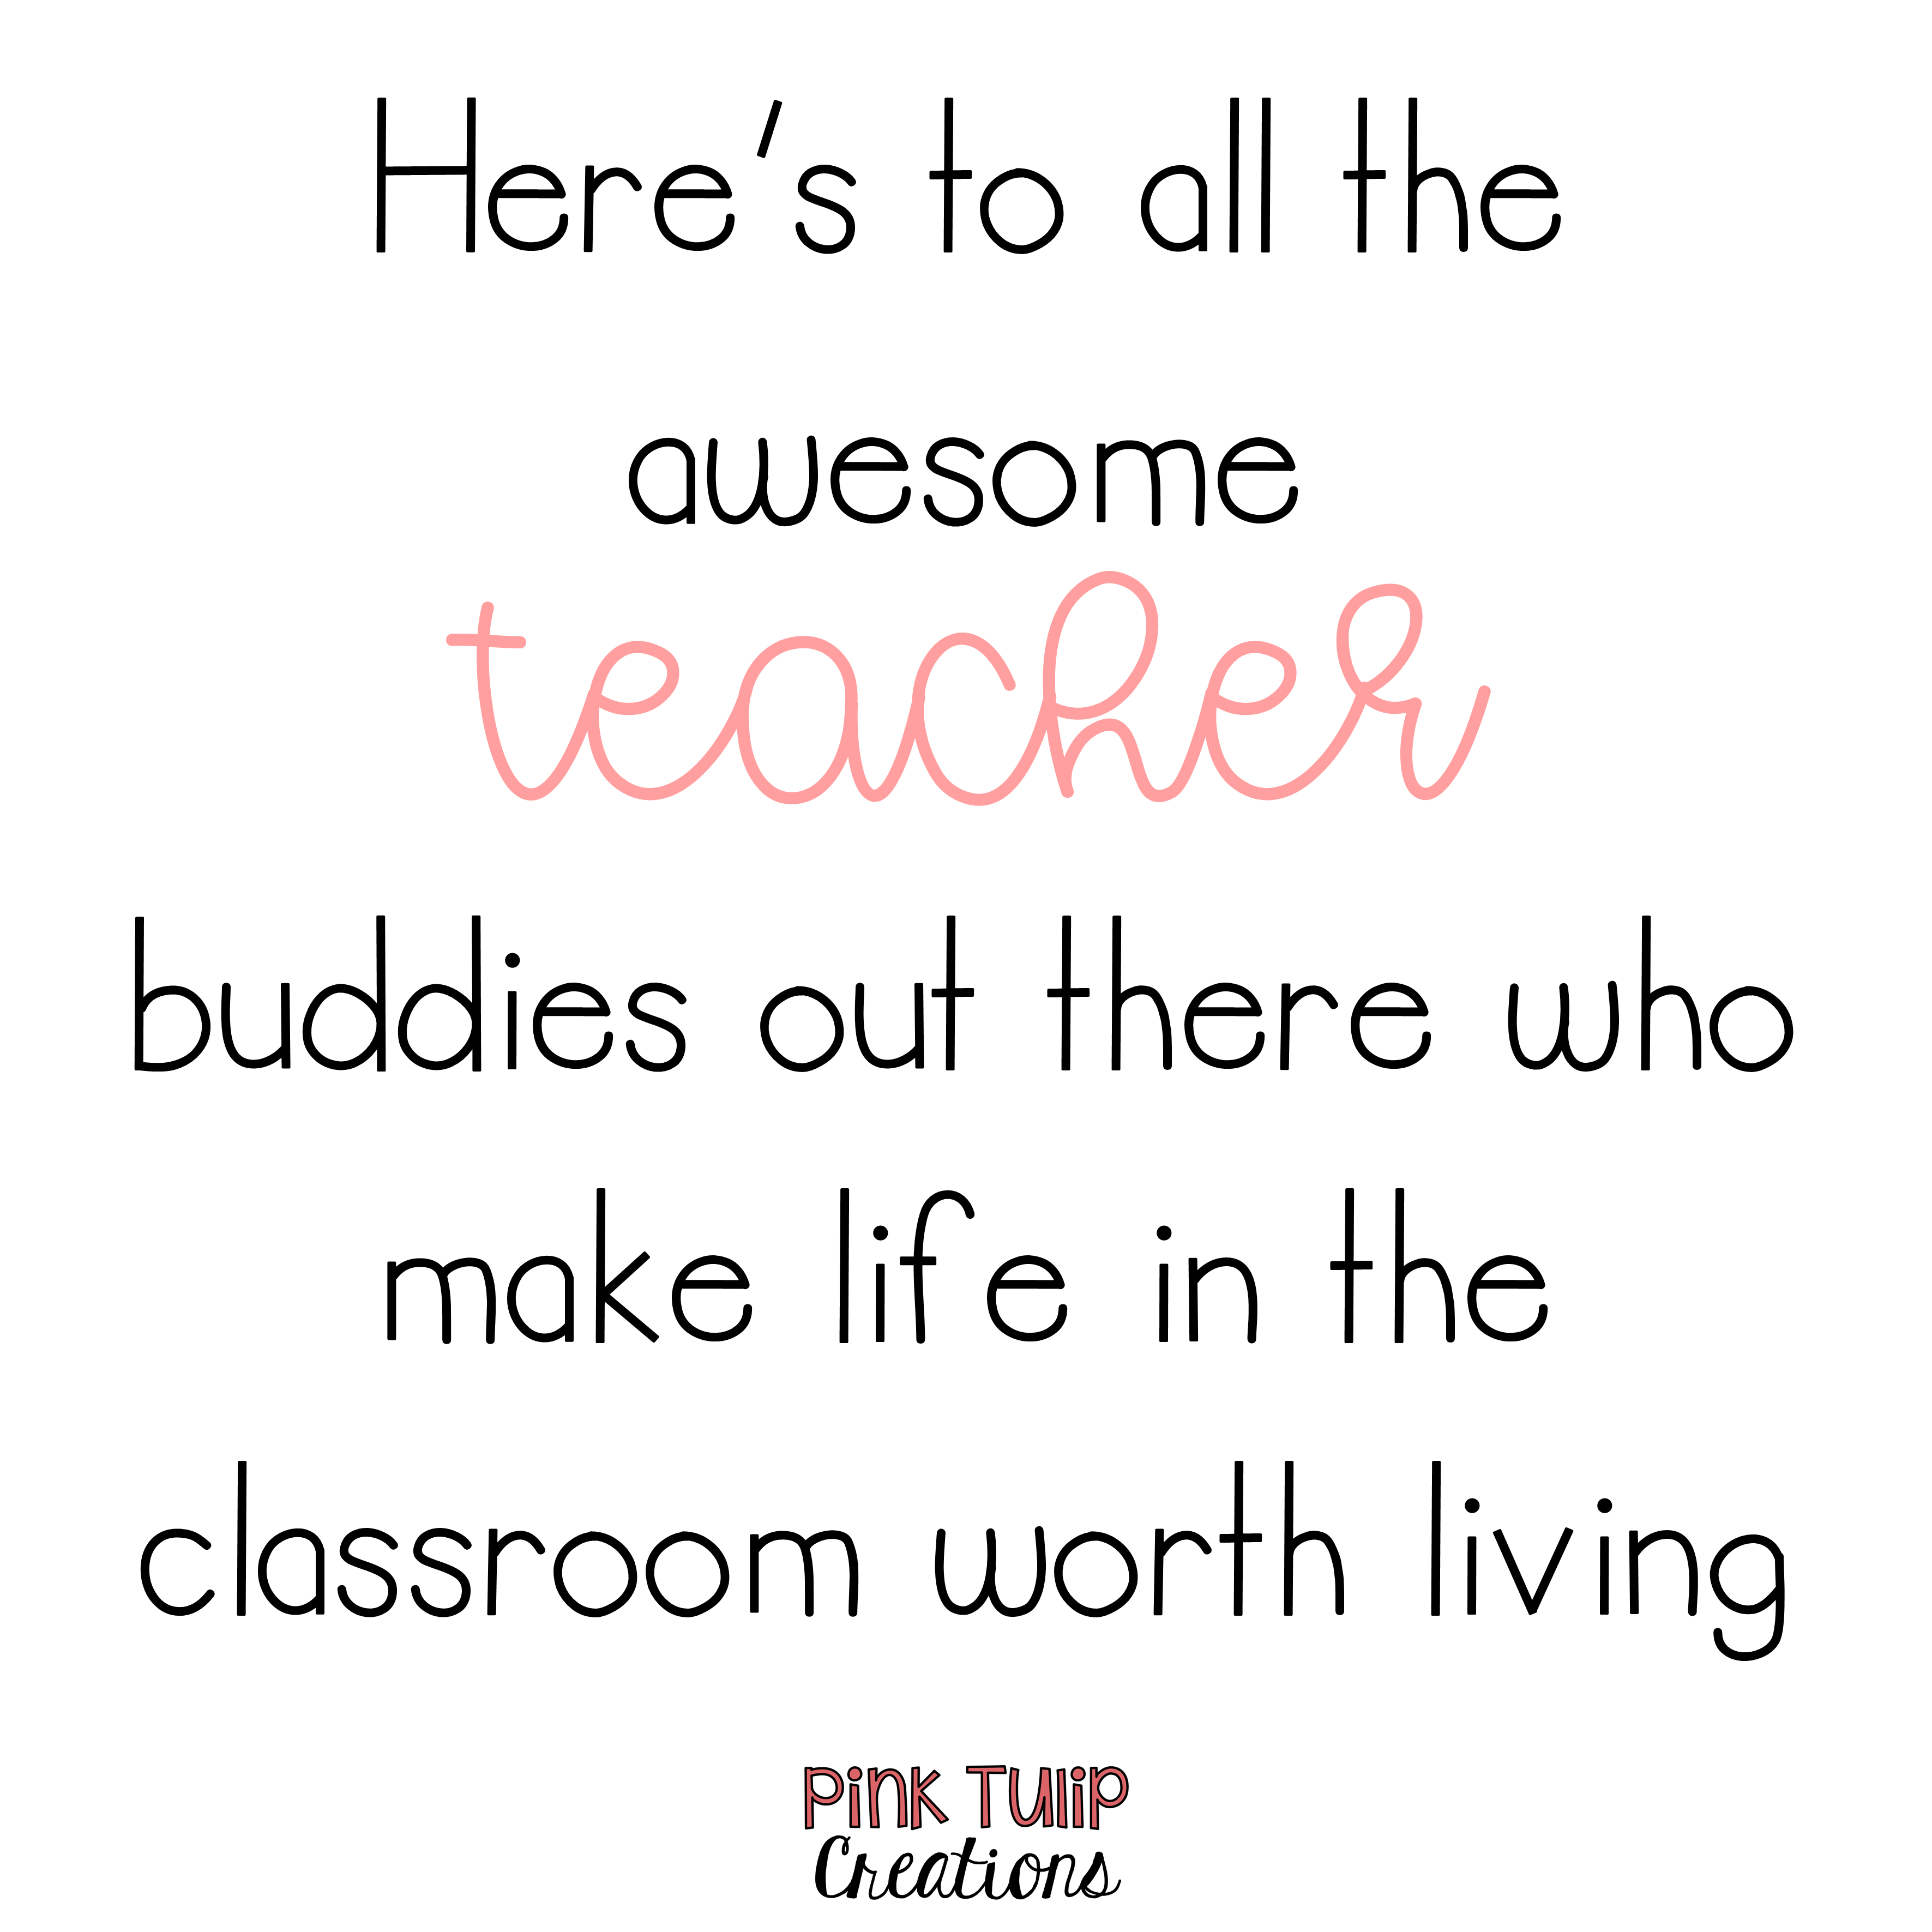 Here's to all the awesome teacher buddies... teacher